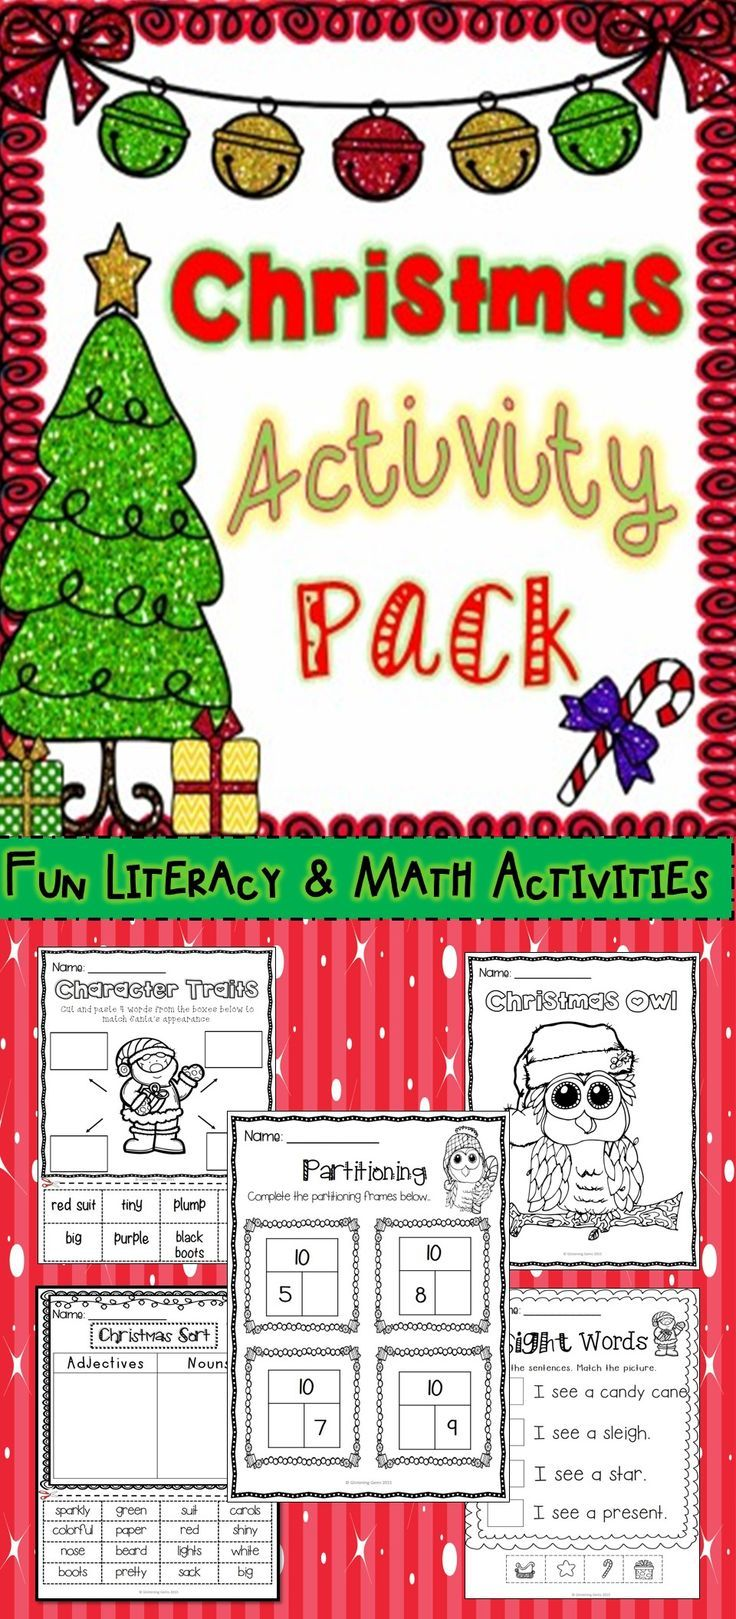 FUN - CHRISTMAS ACTIVITY PACK! A variety of engaging math and literacy activities, perfect to undertake in the festive season. Coloring, word sorting, partitioning, patterns, tens frames, cut and paste activities & lots more! Come check it out. Great value.